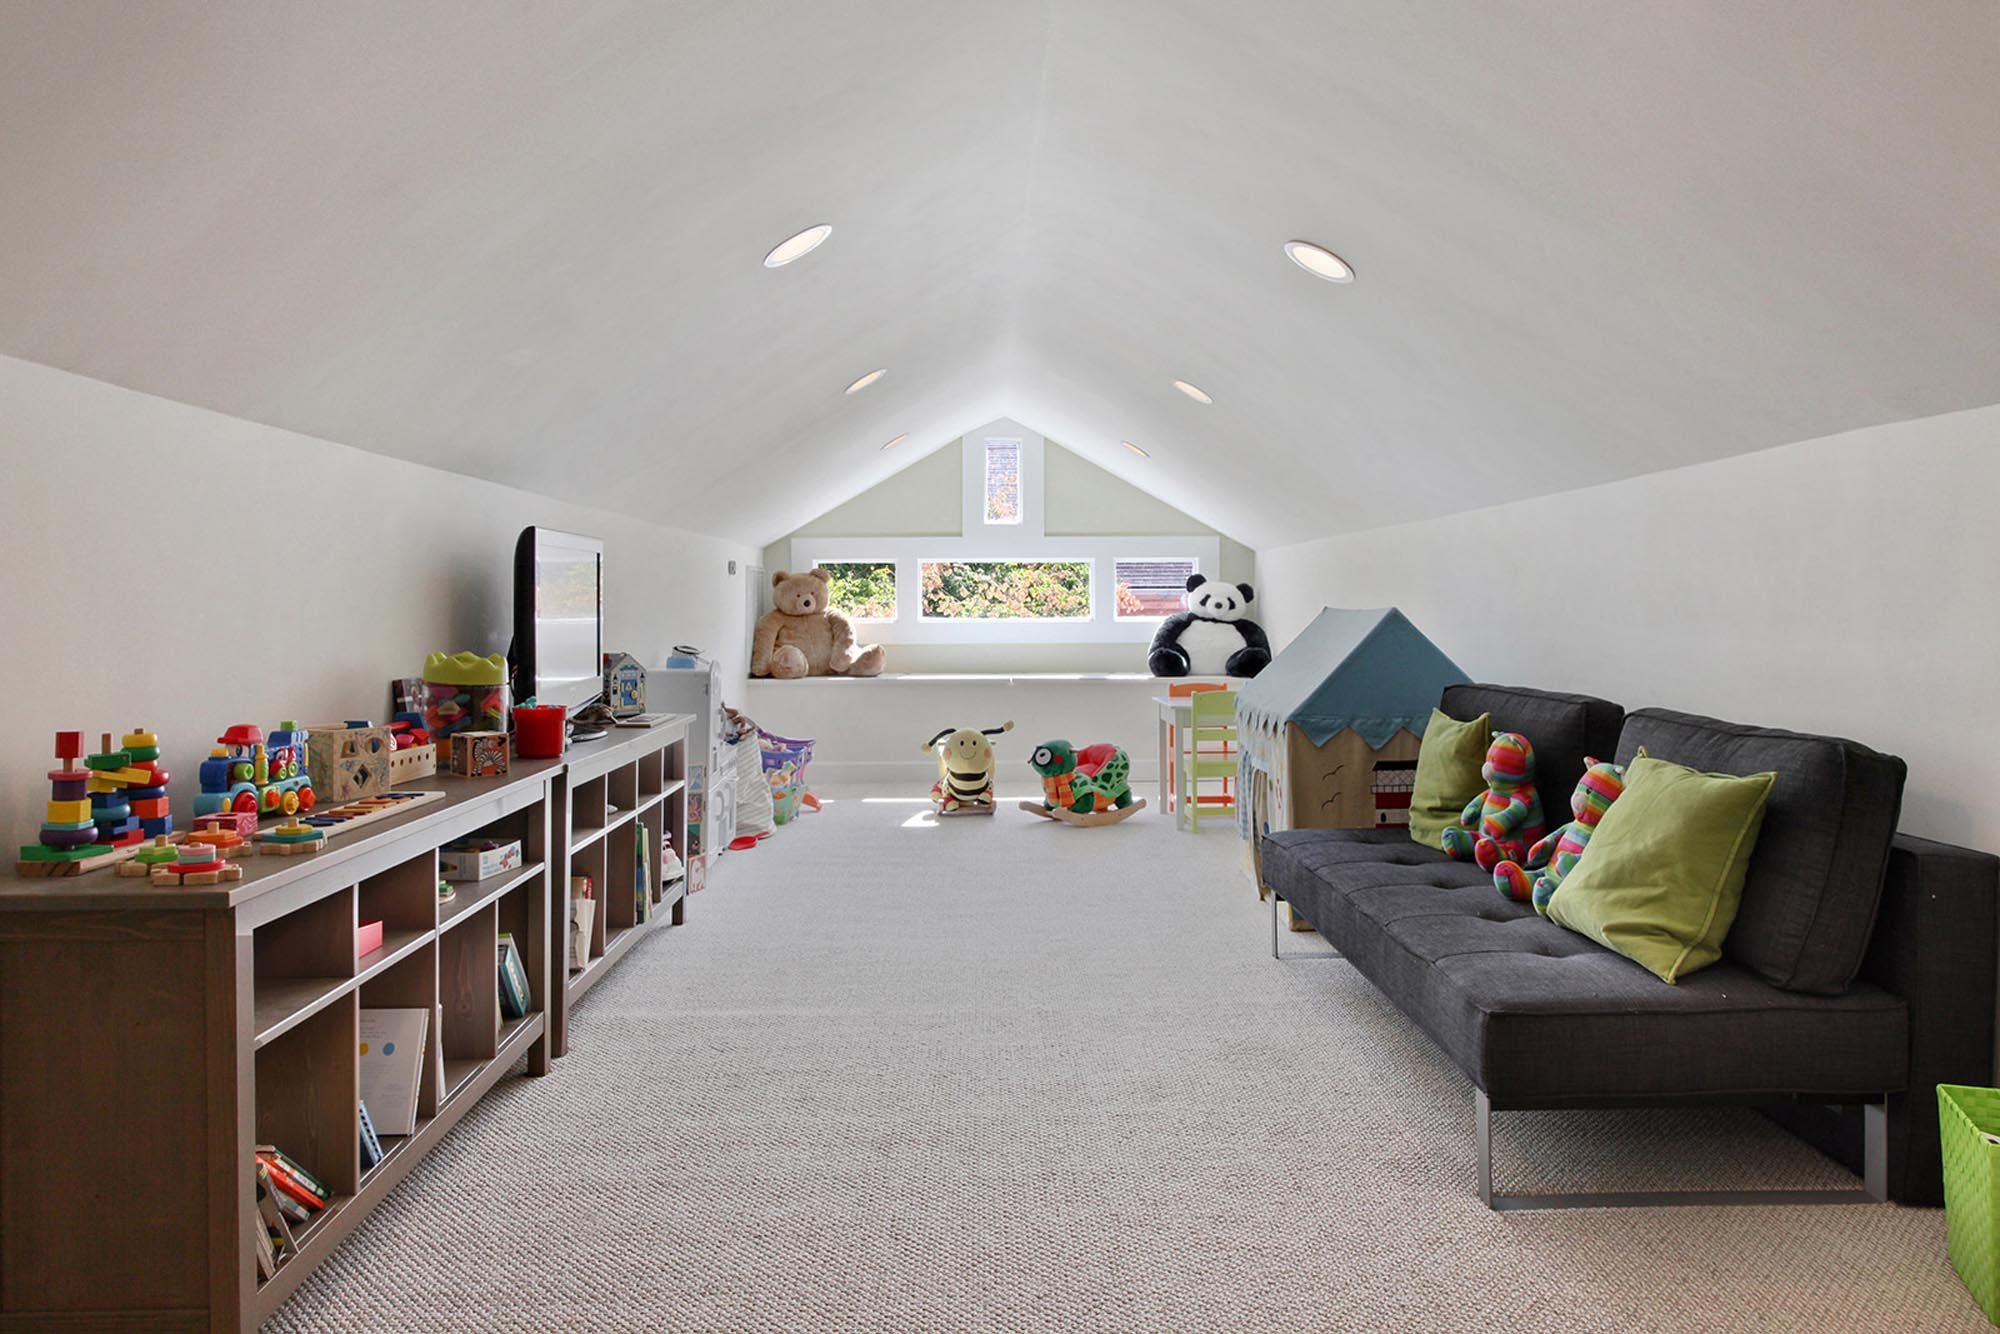 Large attic loft with children's toys on shelves and a guest futon bed